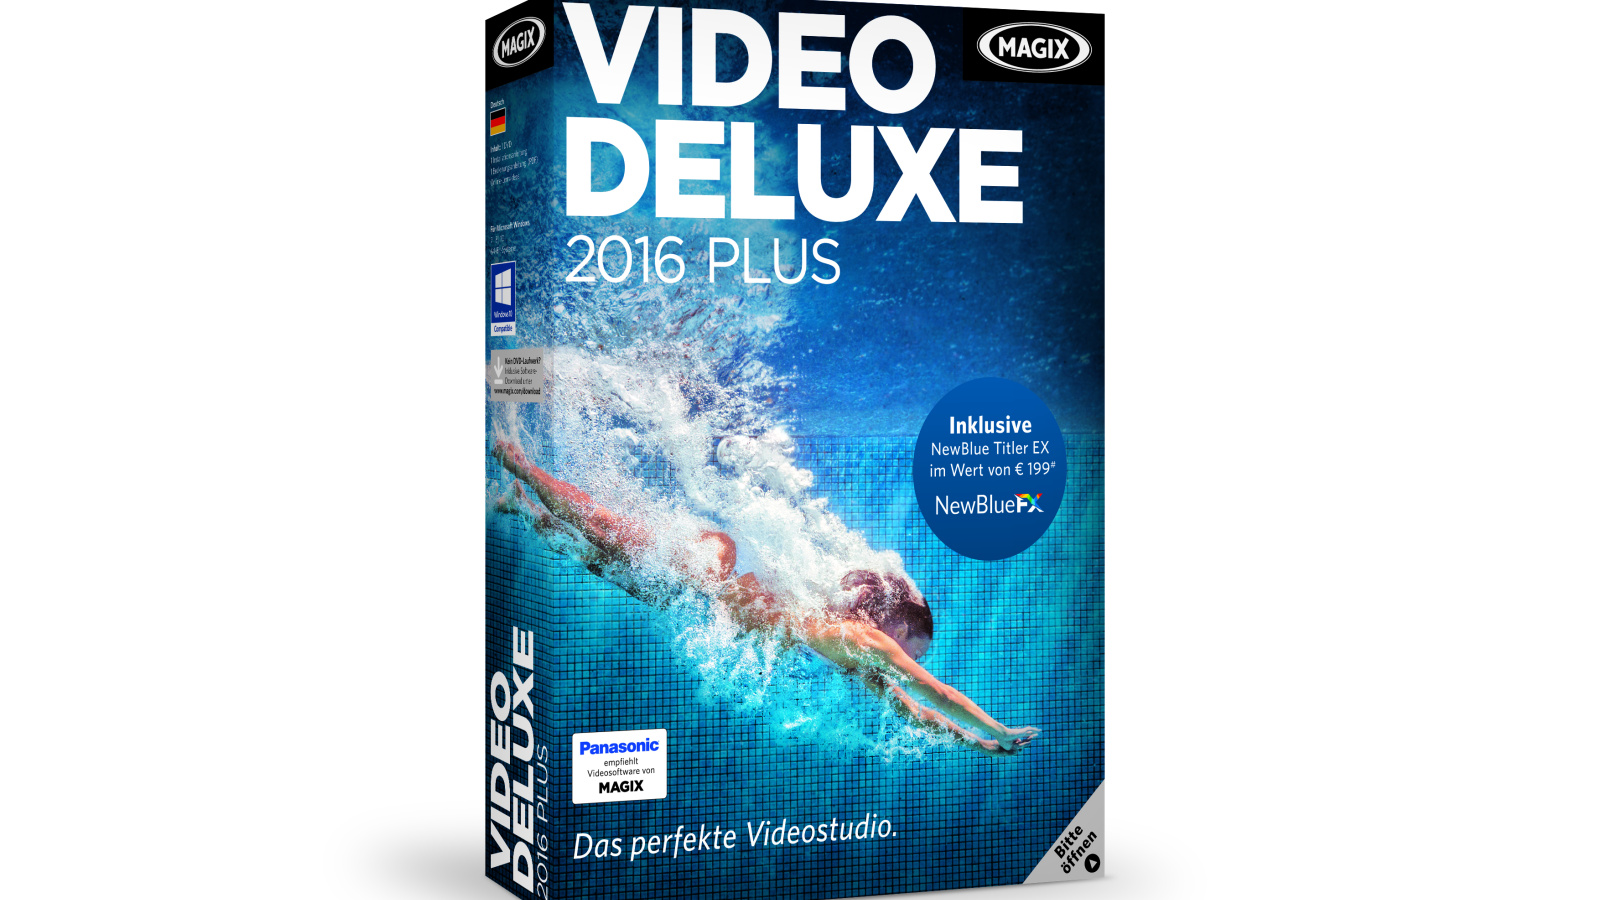 magix video deluxe 2016 plus test review game2gether. Black Bedroom Furniture Sets. Home Design Ideas